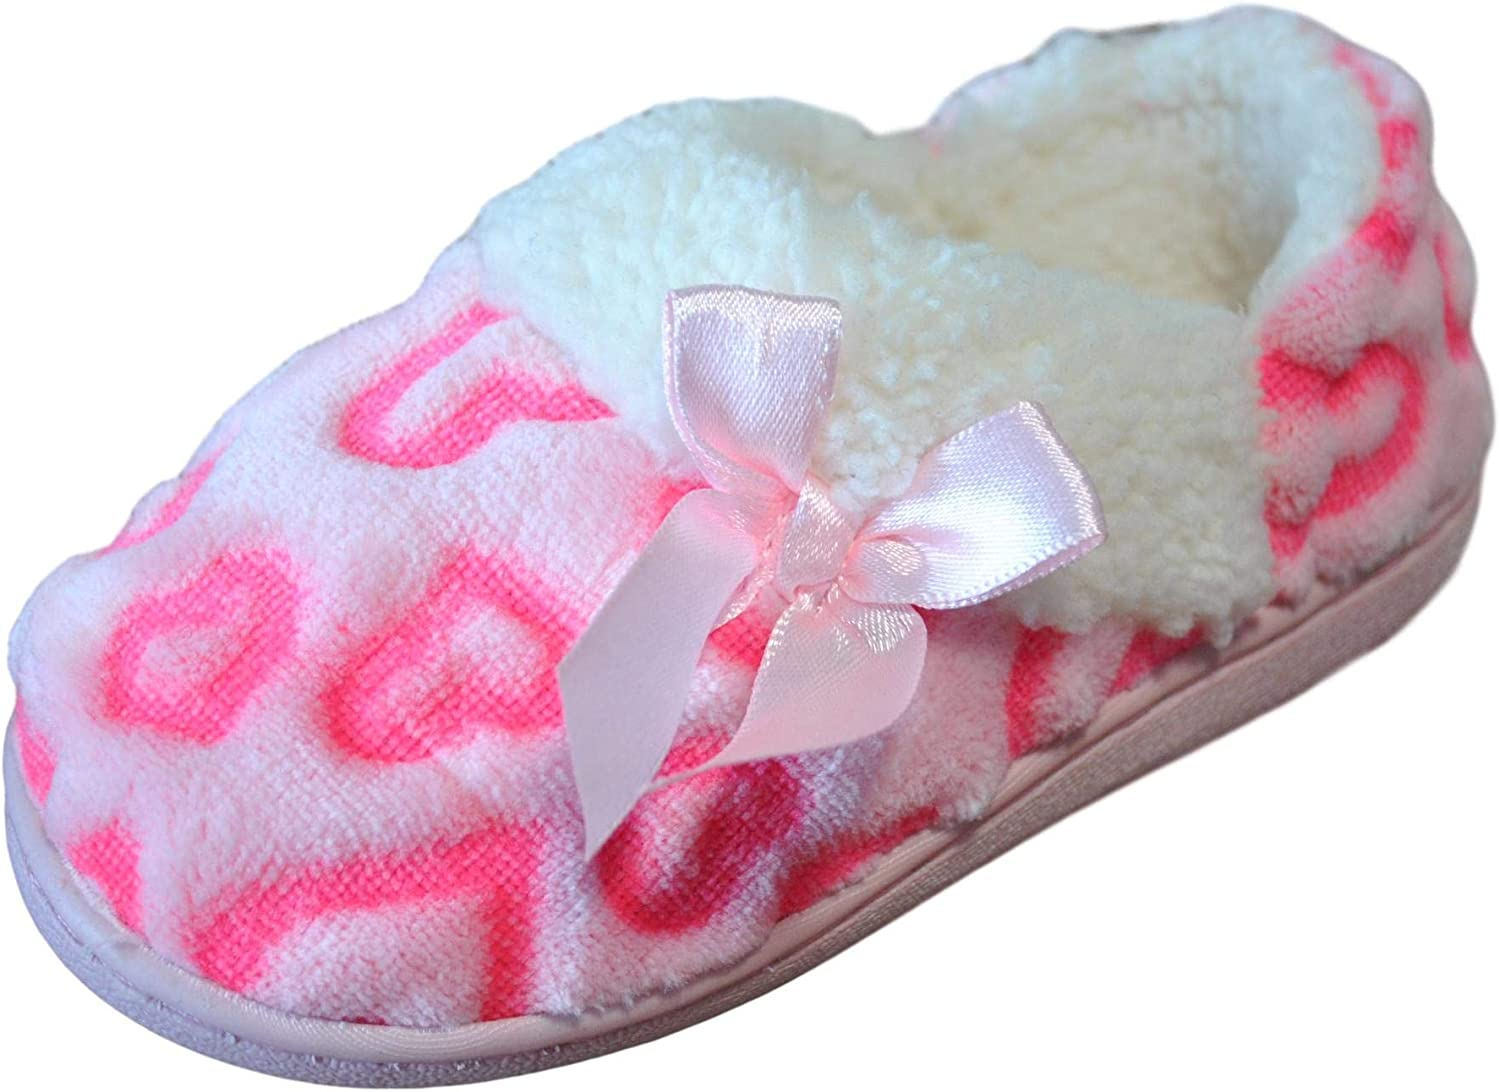 Wonder Nation Spasm price Girl's Pink Soft House Popular products Loafer Slipper Style Shoes